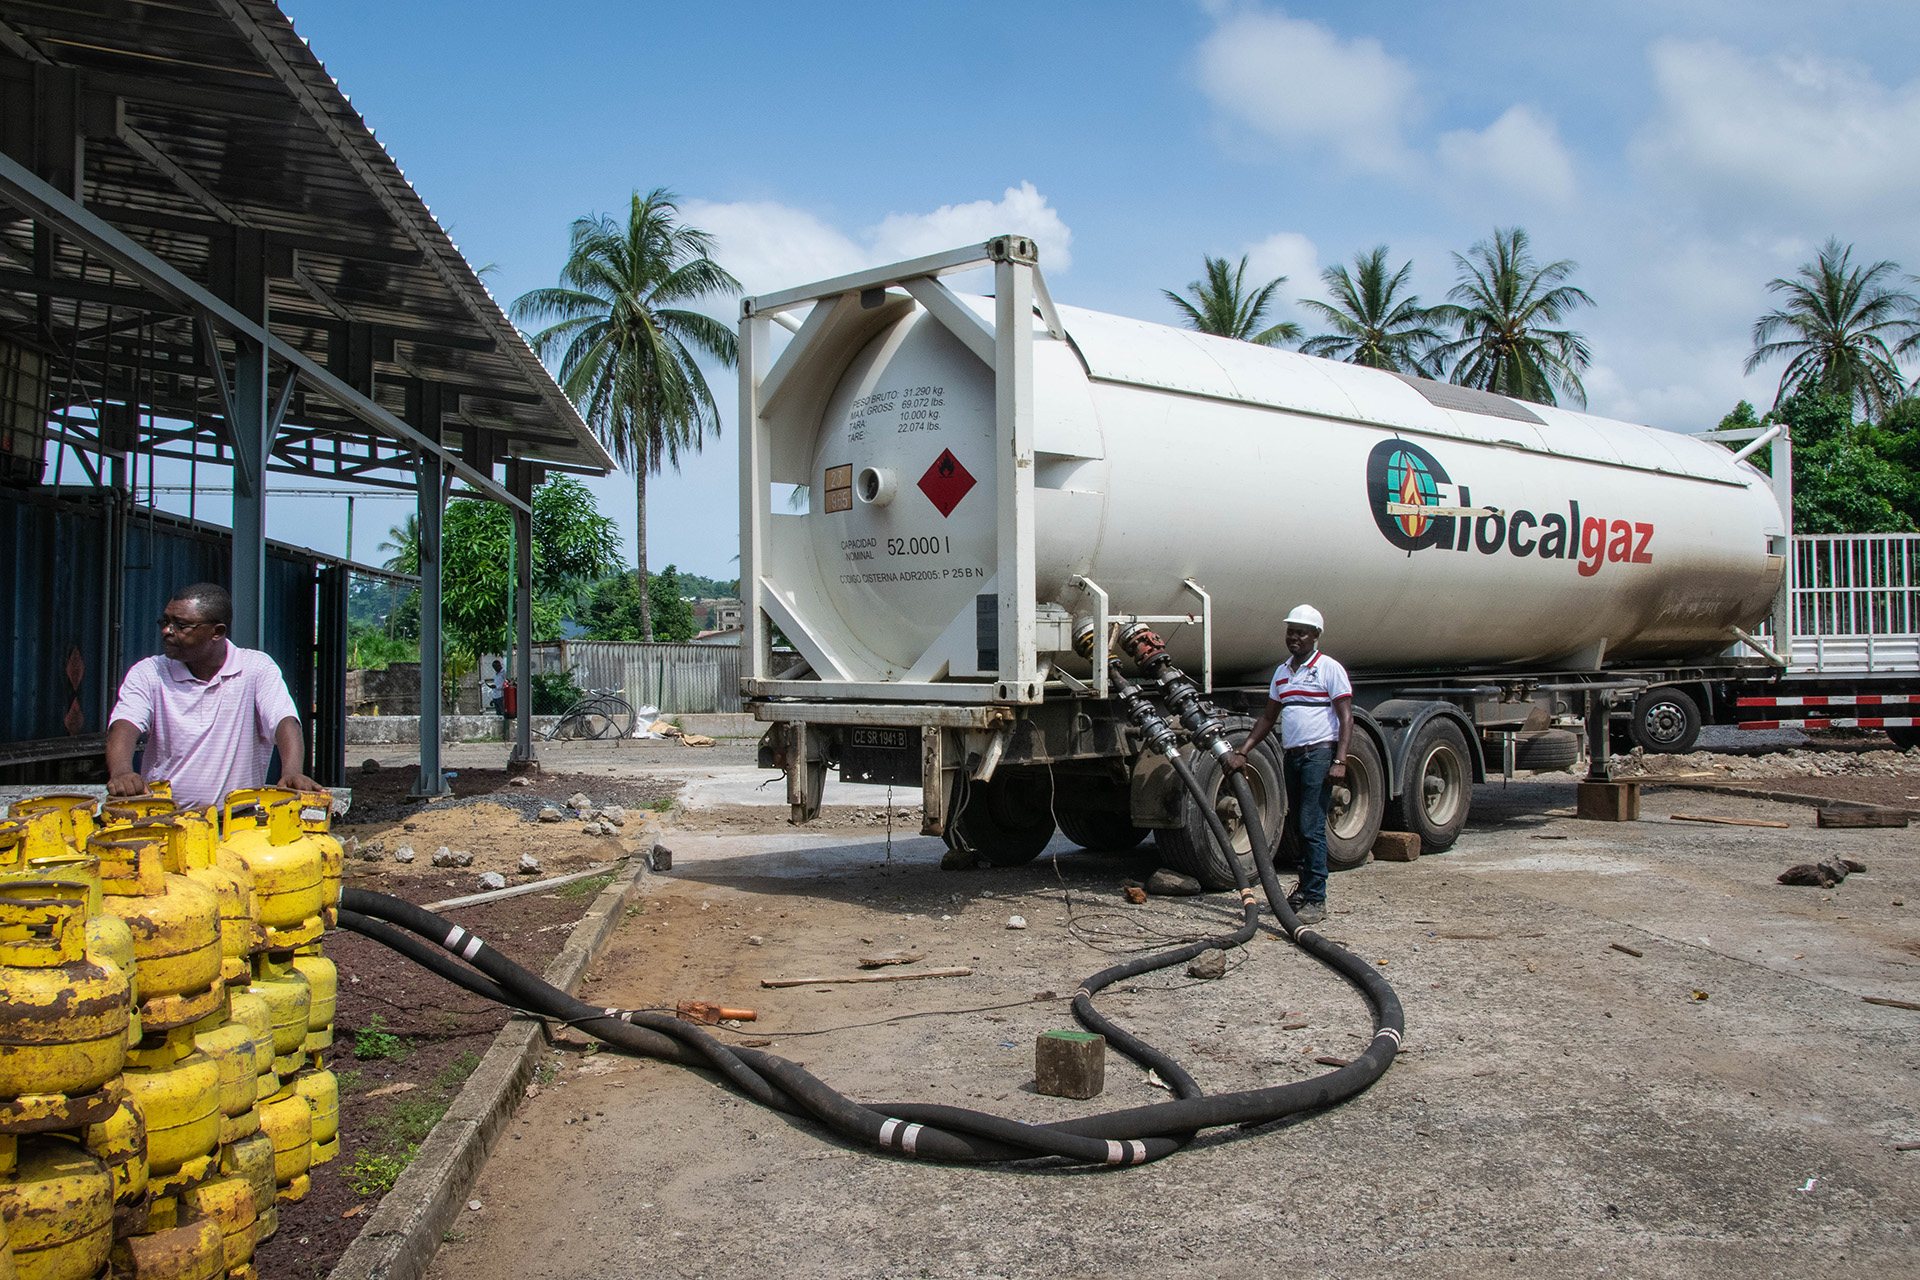 LPG tanker at the GlocalGaz filling plant, Limbe, Cameroon